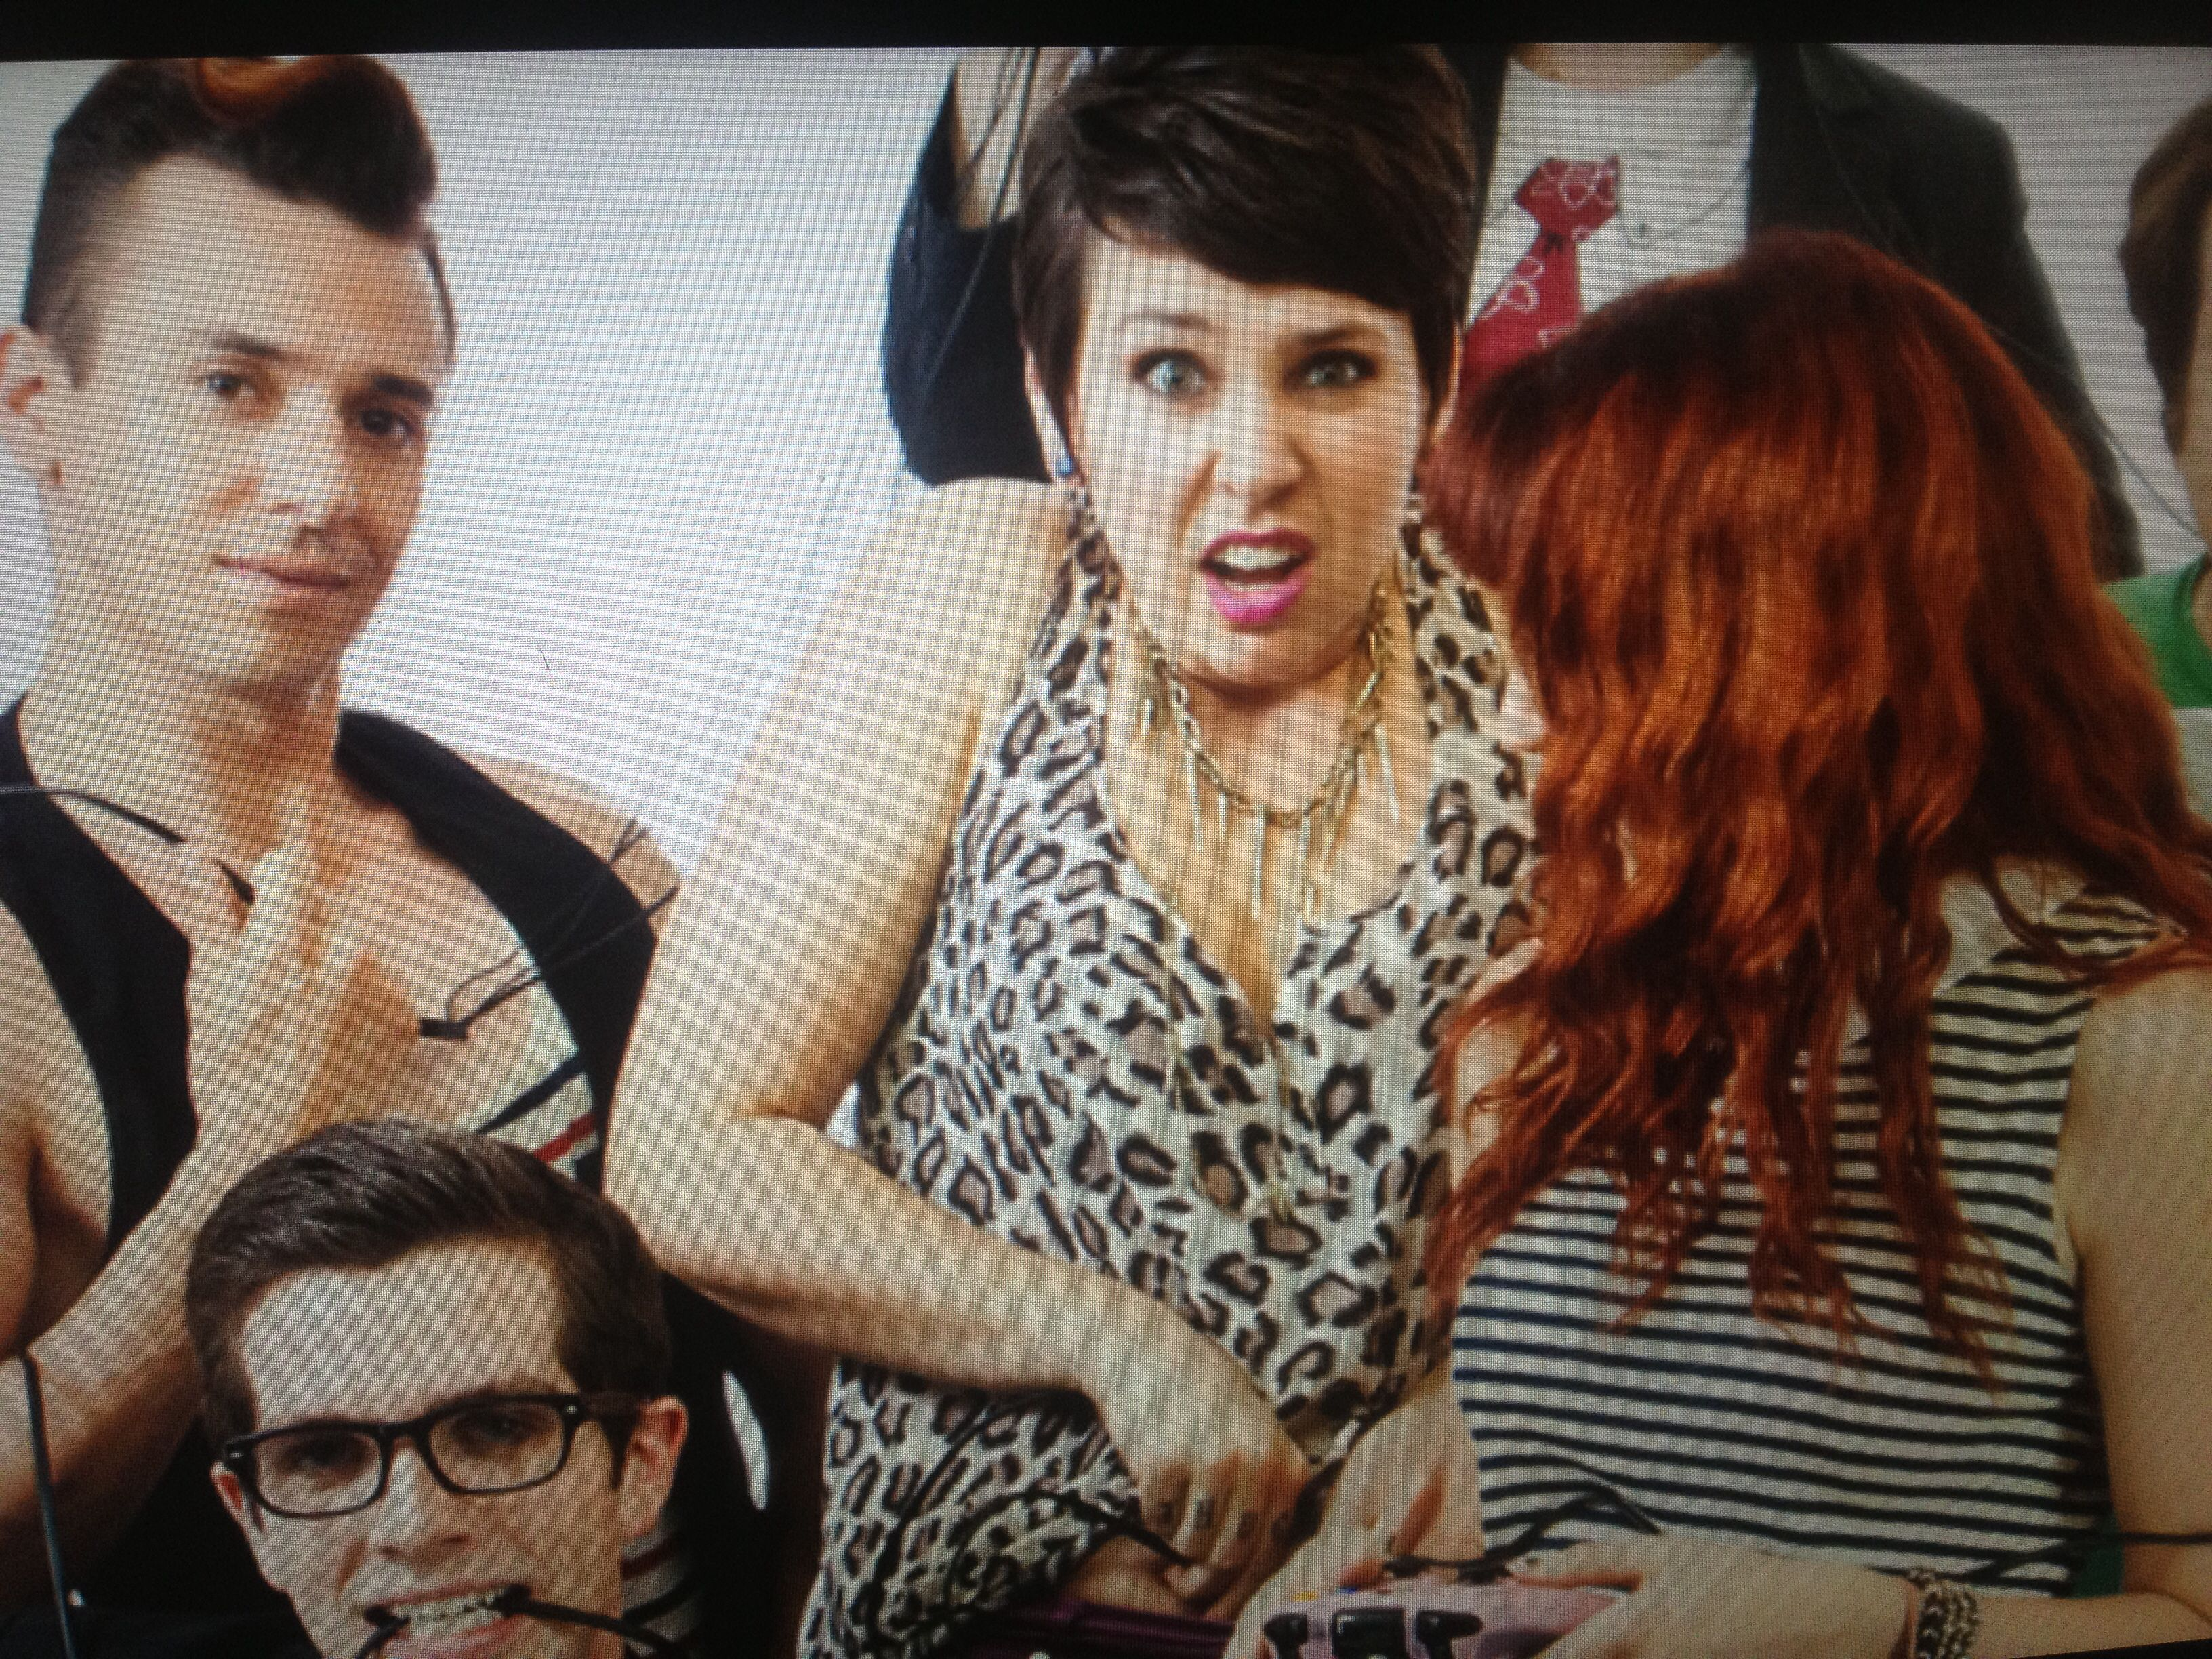 GamerGirl: The Webseries Omg it's a picture from the photo shoot!!!!